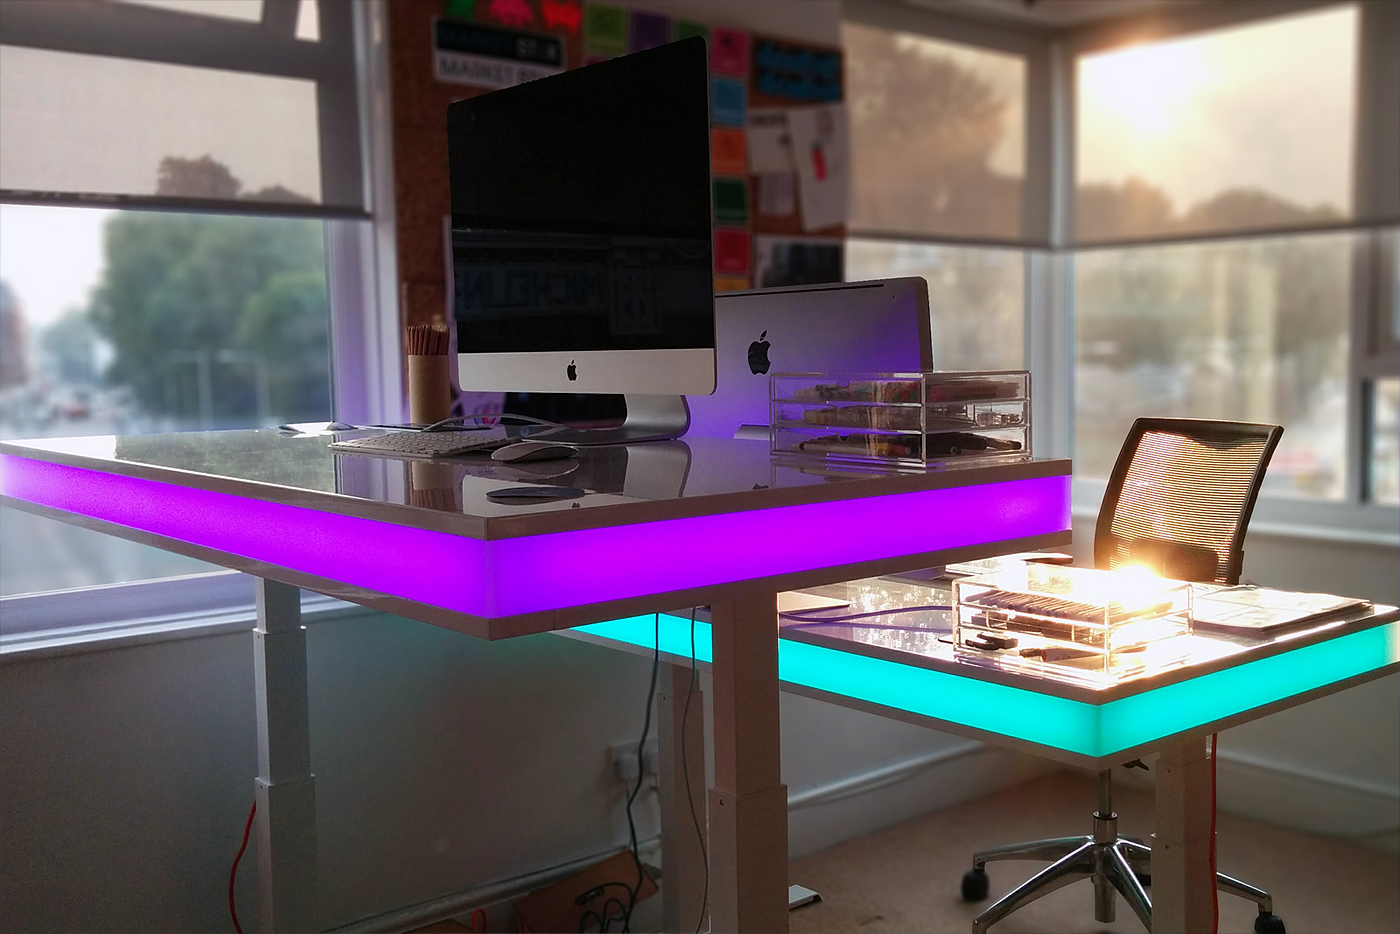 led table and chairs folding chair into bed tableair smart desk changes height via sensing module